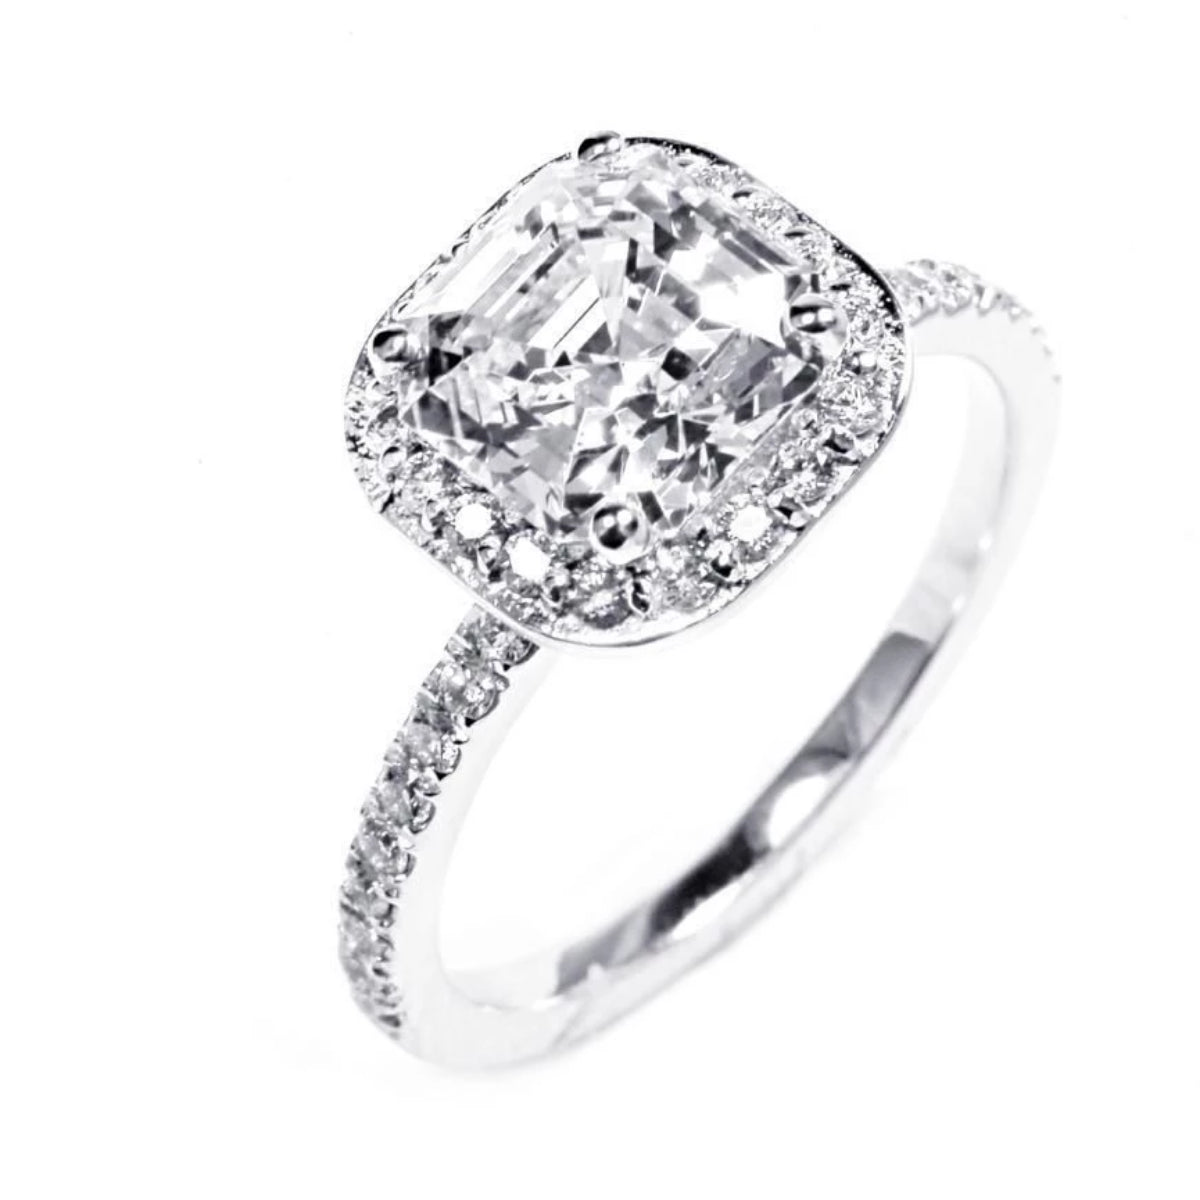 for settle engagement i cushion my pin could cut rings carats dream carat ring